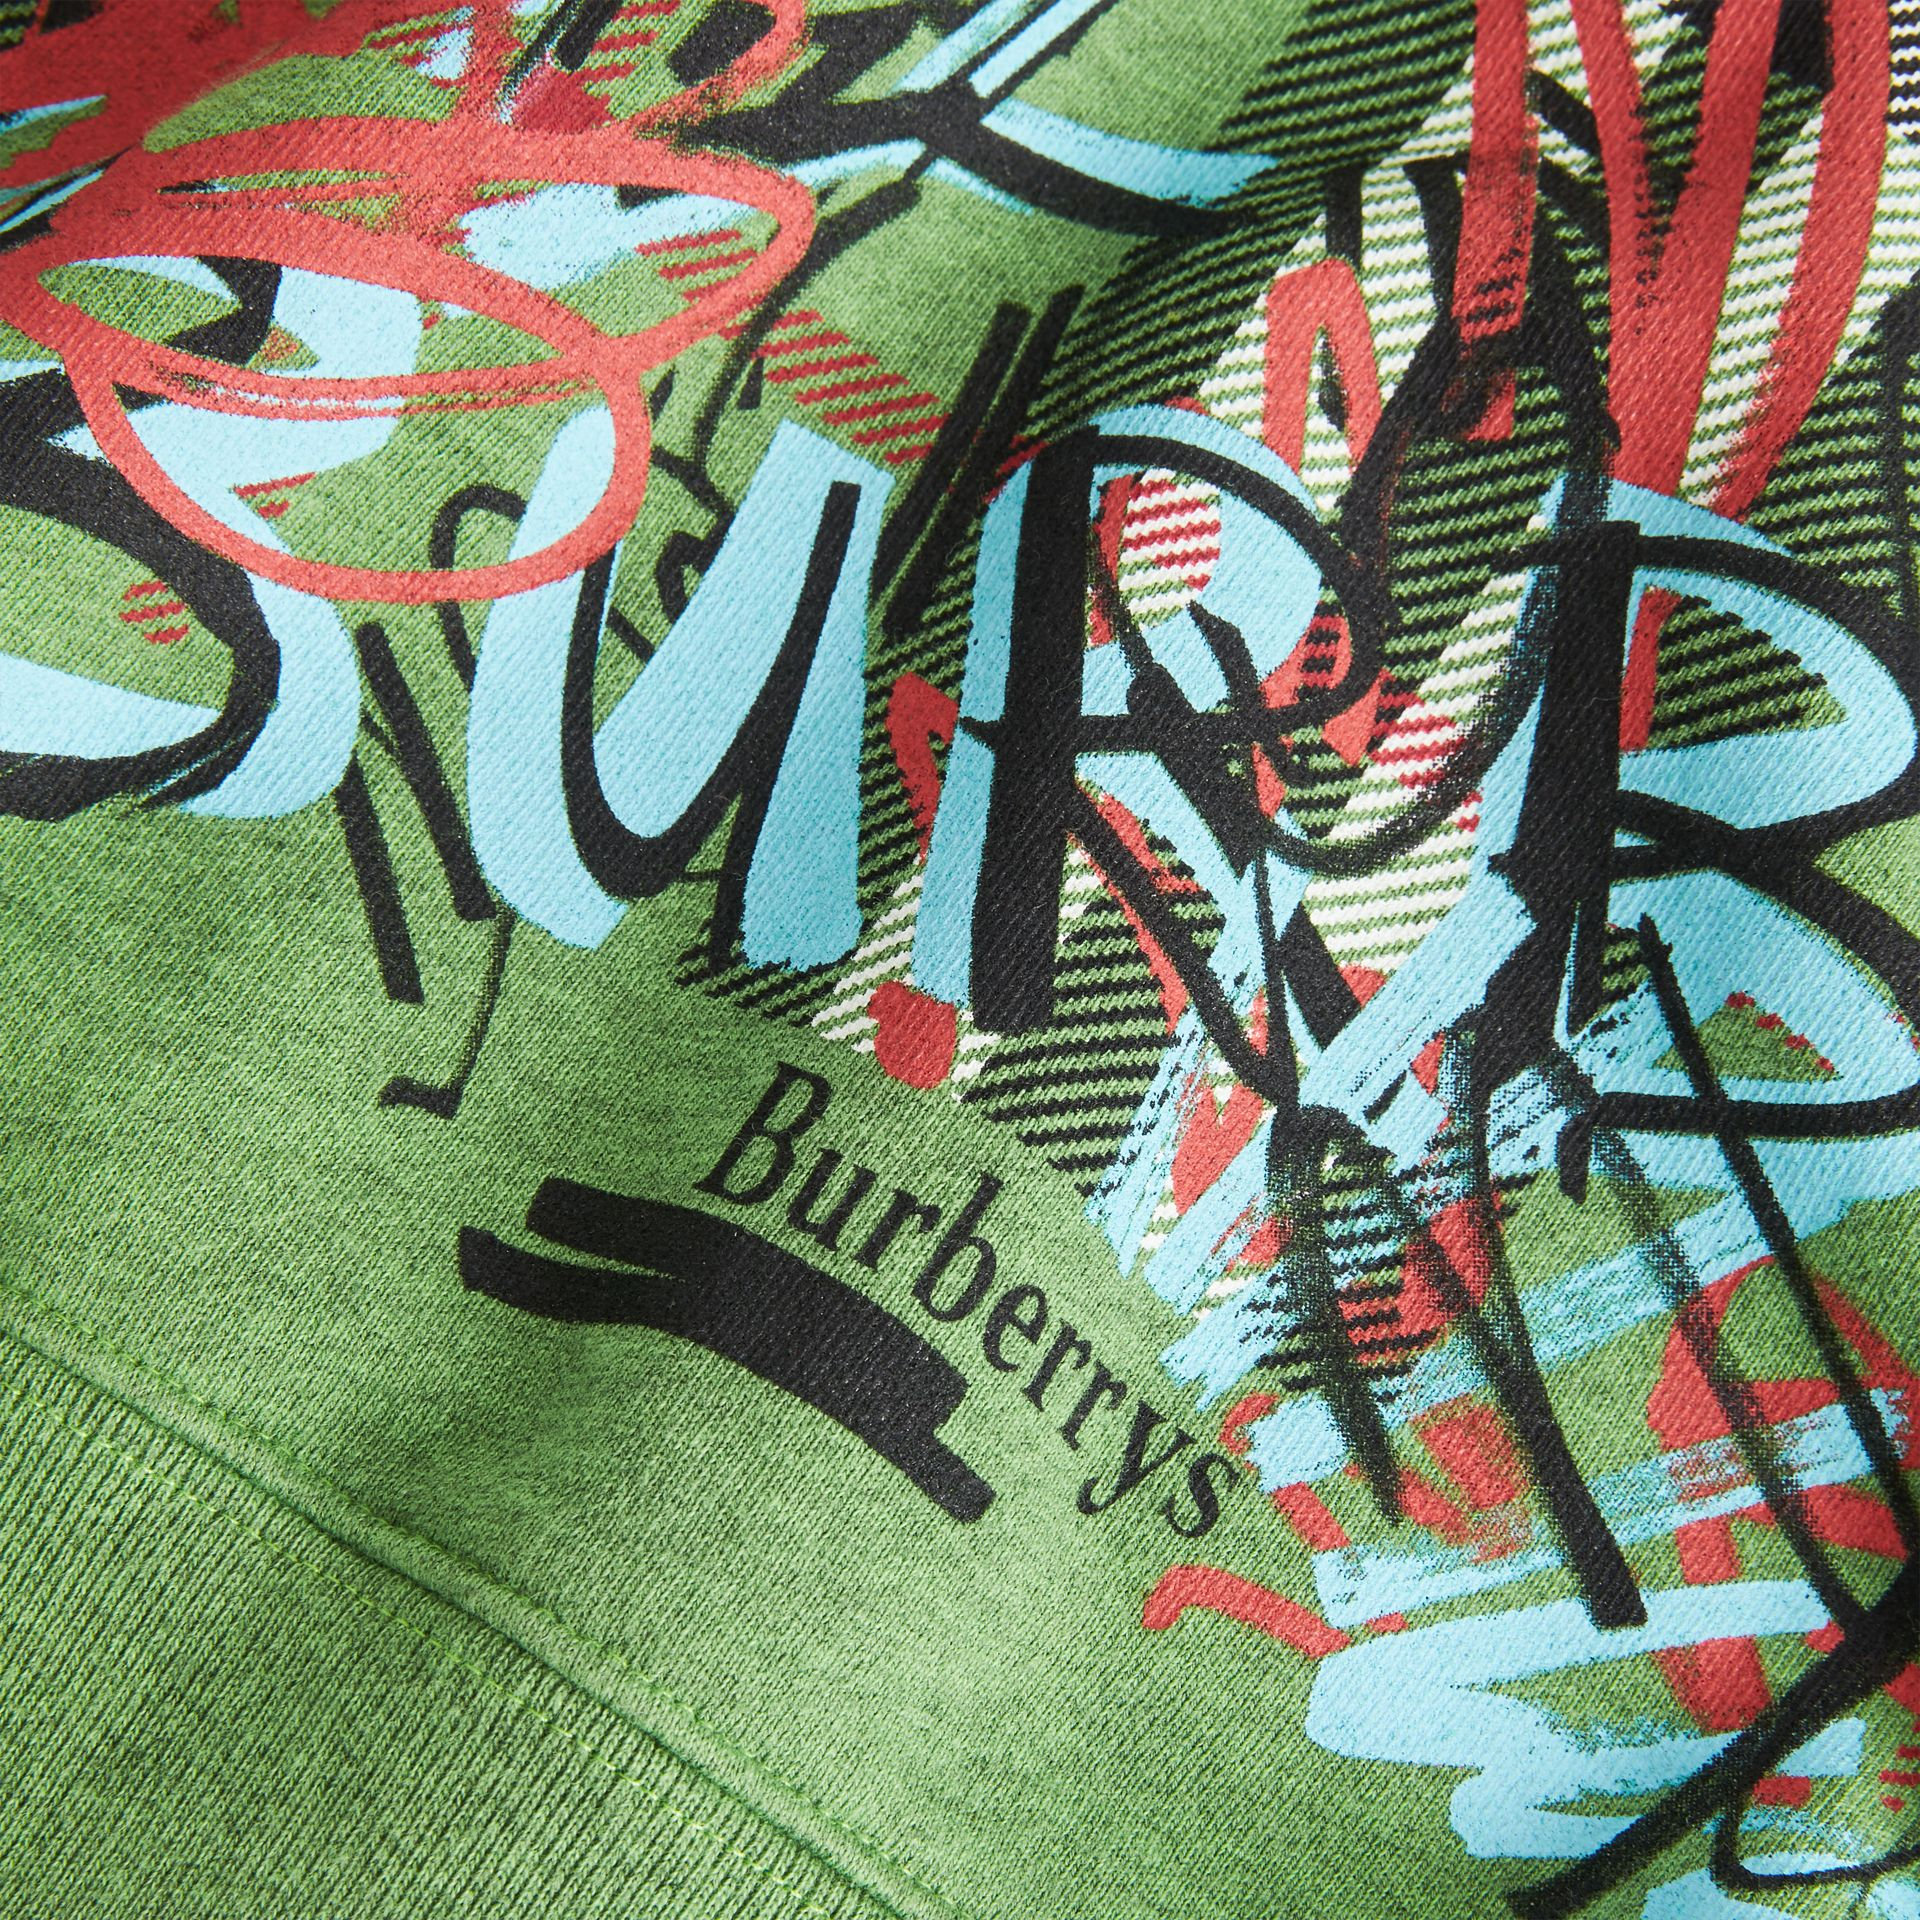 Graffiti Scribble Check Print Cotton Dress in Lime Green - Children | Burberry United States - gallery image 1